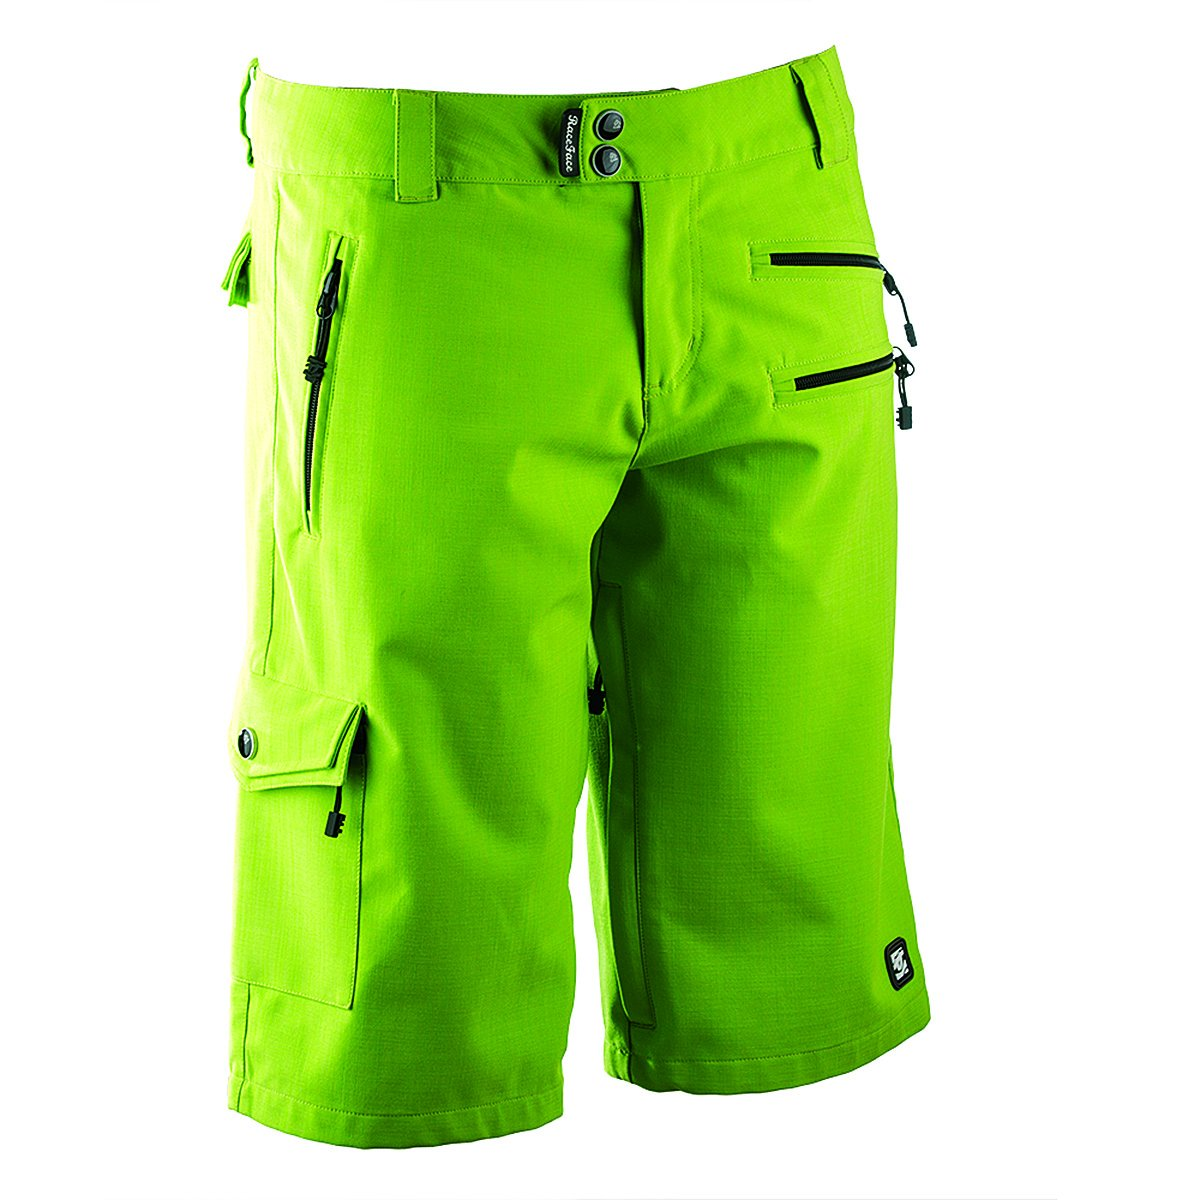 Race Face Women's Khyber Shorts CL4842-P